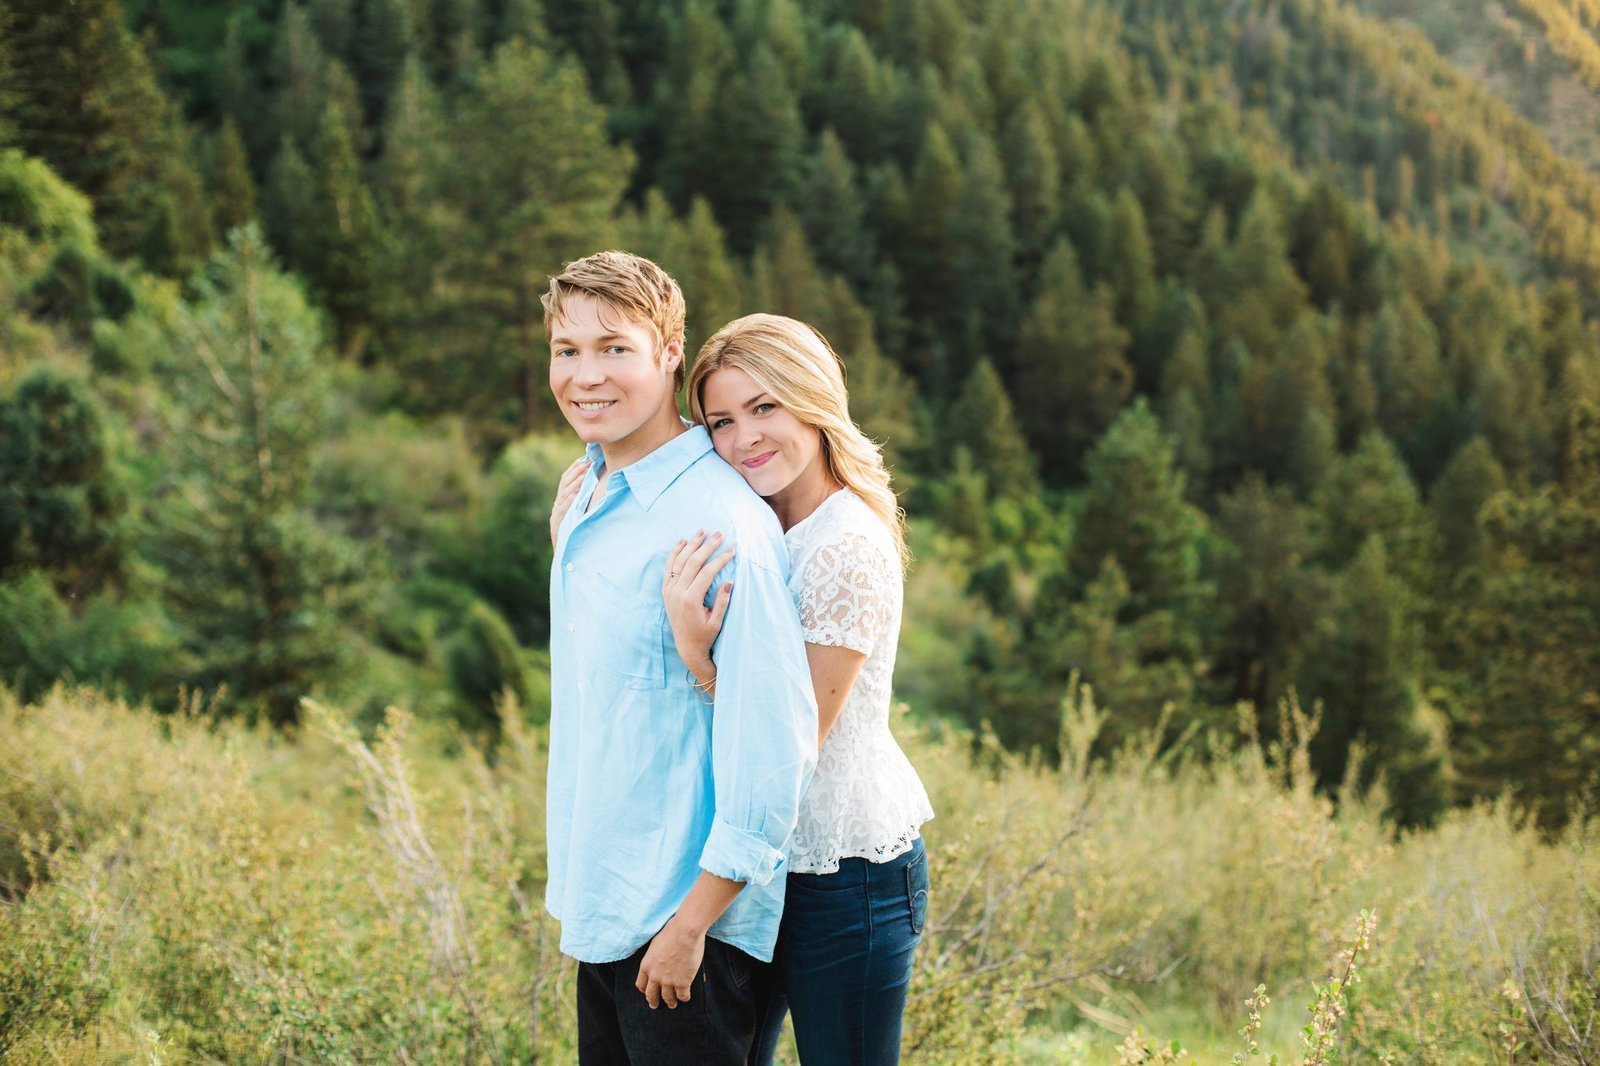 Engagements -Denver Lookout Mountain Engagement Session Golden Colorado Wedding Photographer Overlook City Lights Nature Outdoors Valley Light Couple (11)